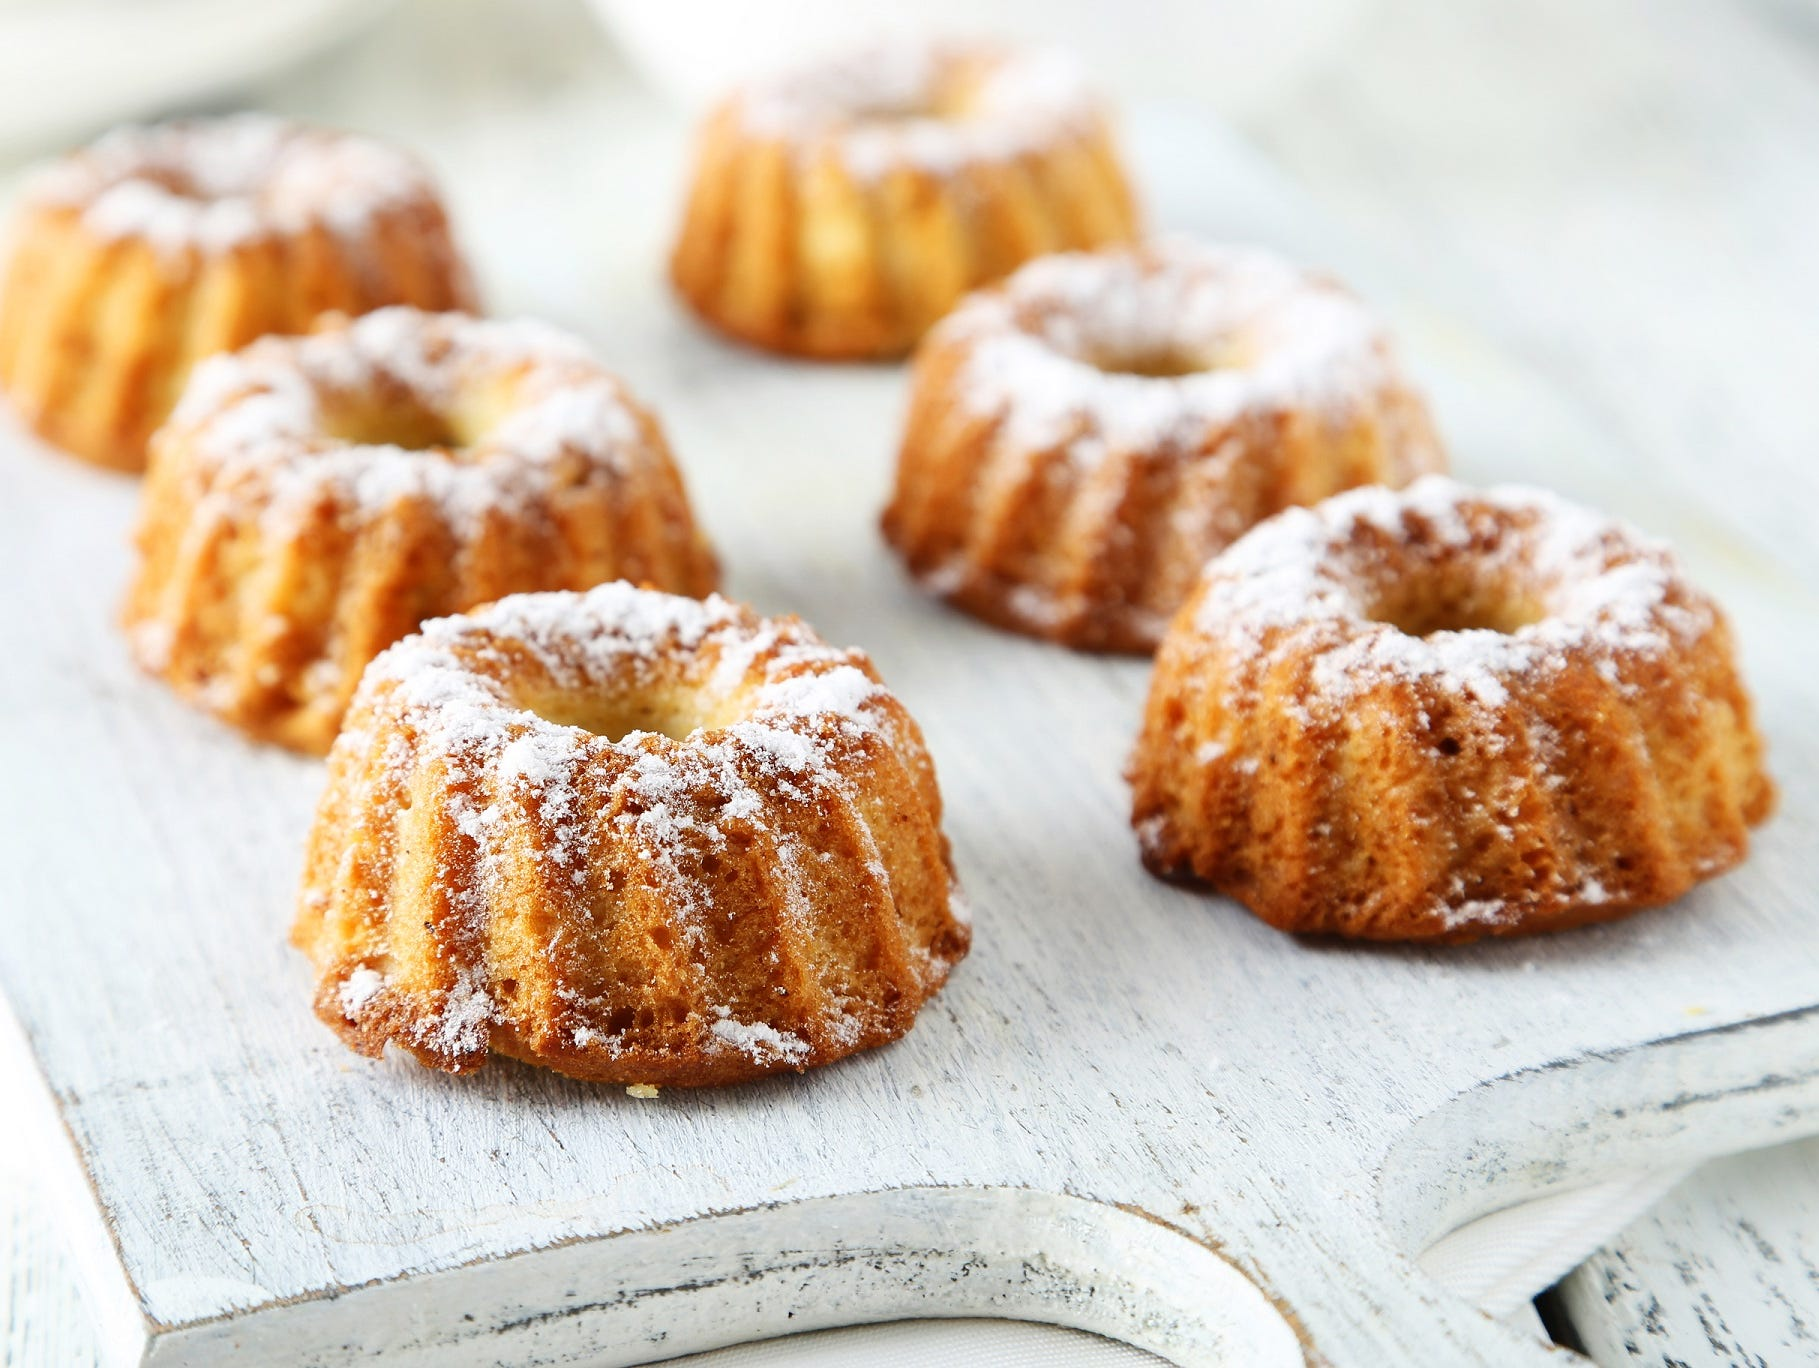 Enjoy a FREE Bundtlet with the purchase of a Bundtlet of equal or greater value at Nothing Bundt Cakes!